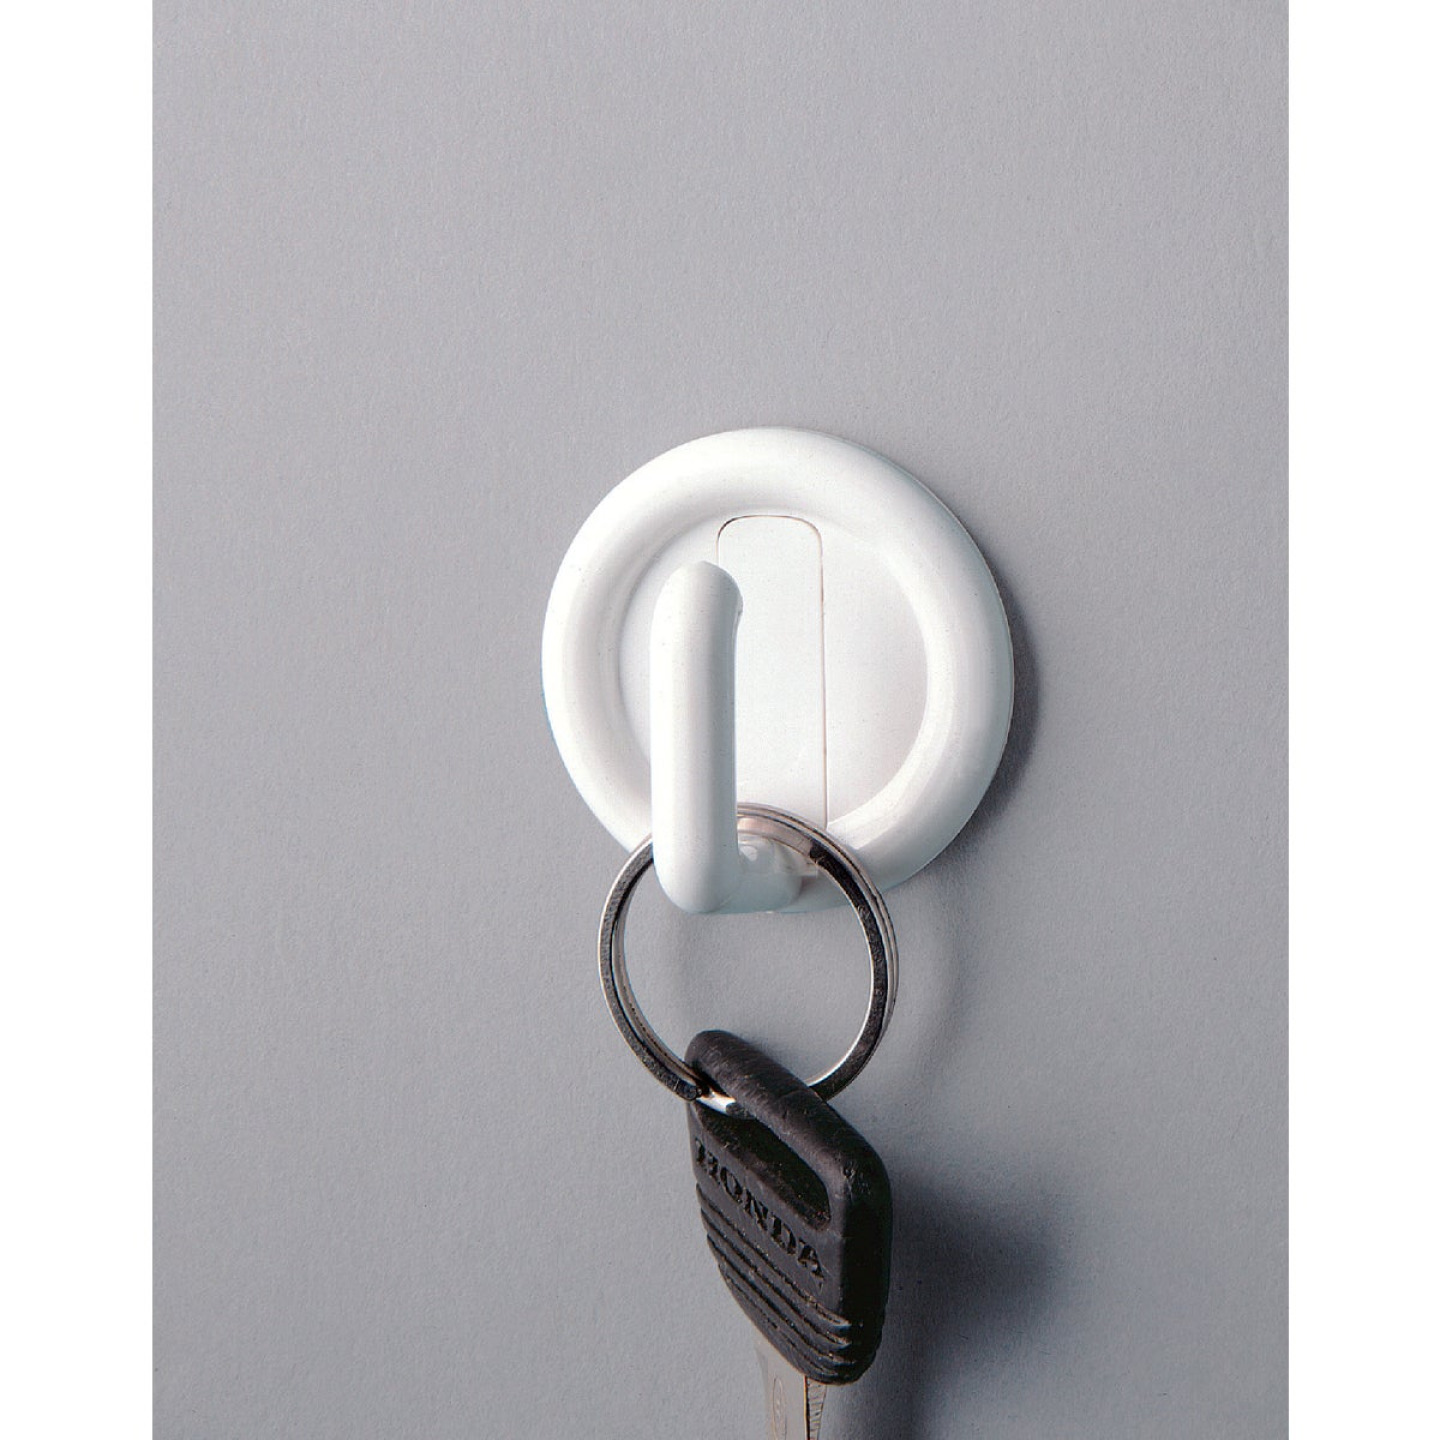 InterDesign Axis Utility Round White Adhesive Hook Image 2